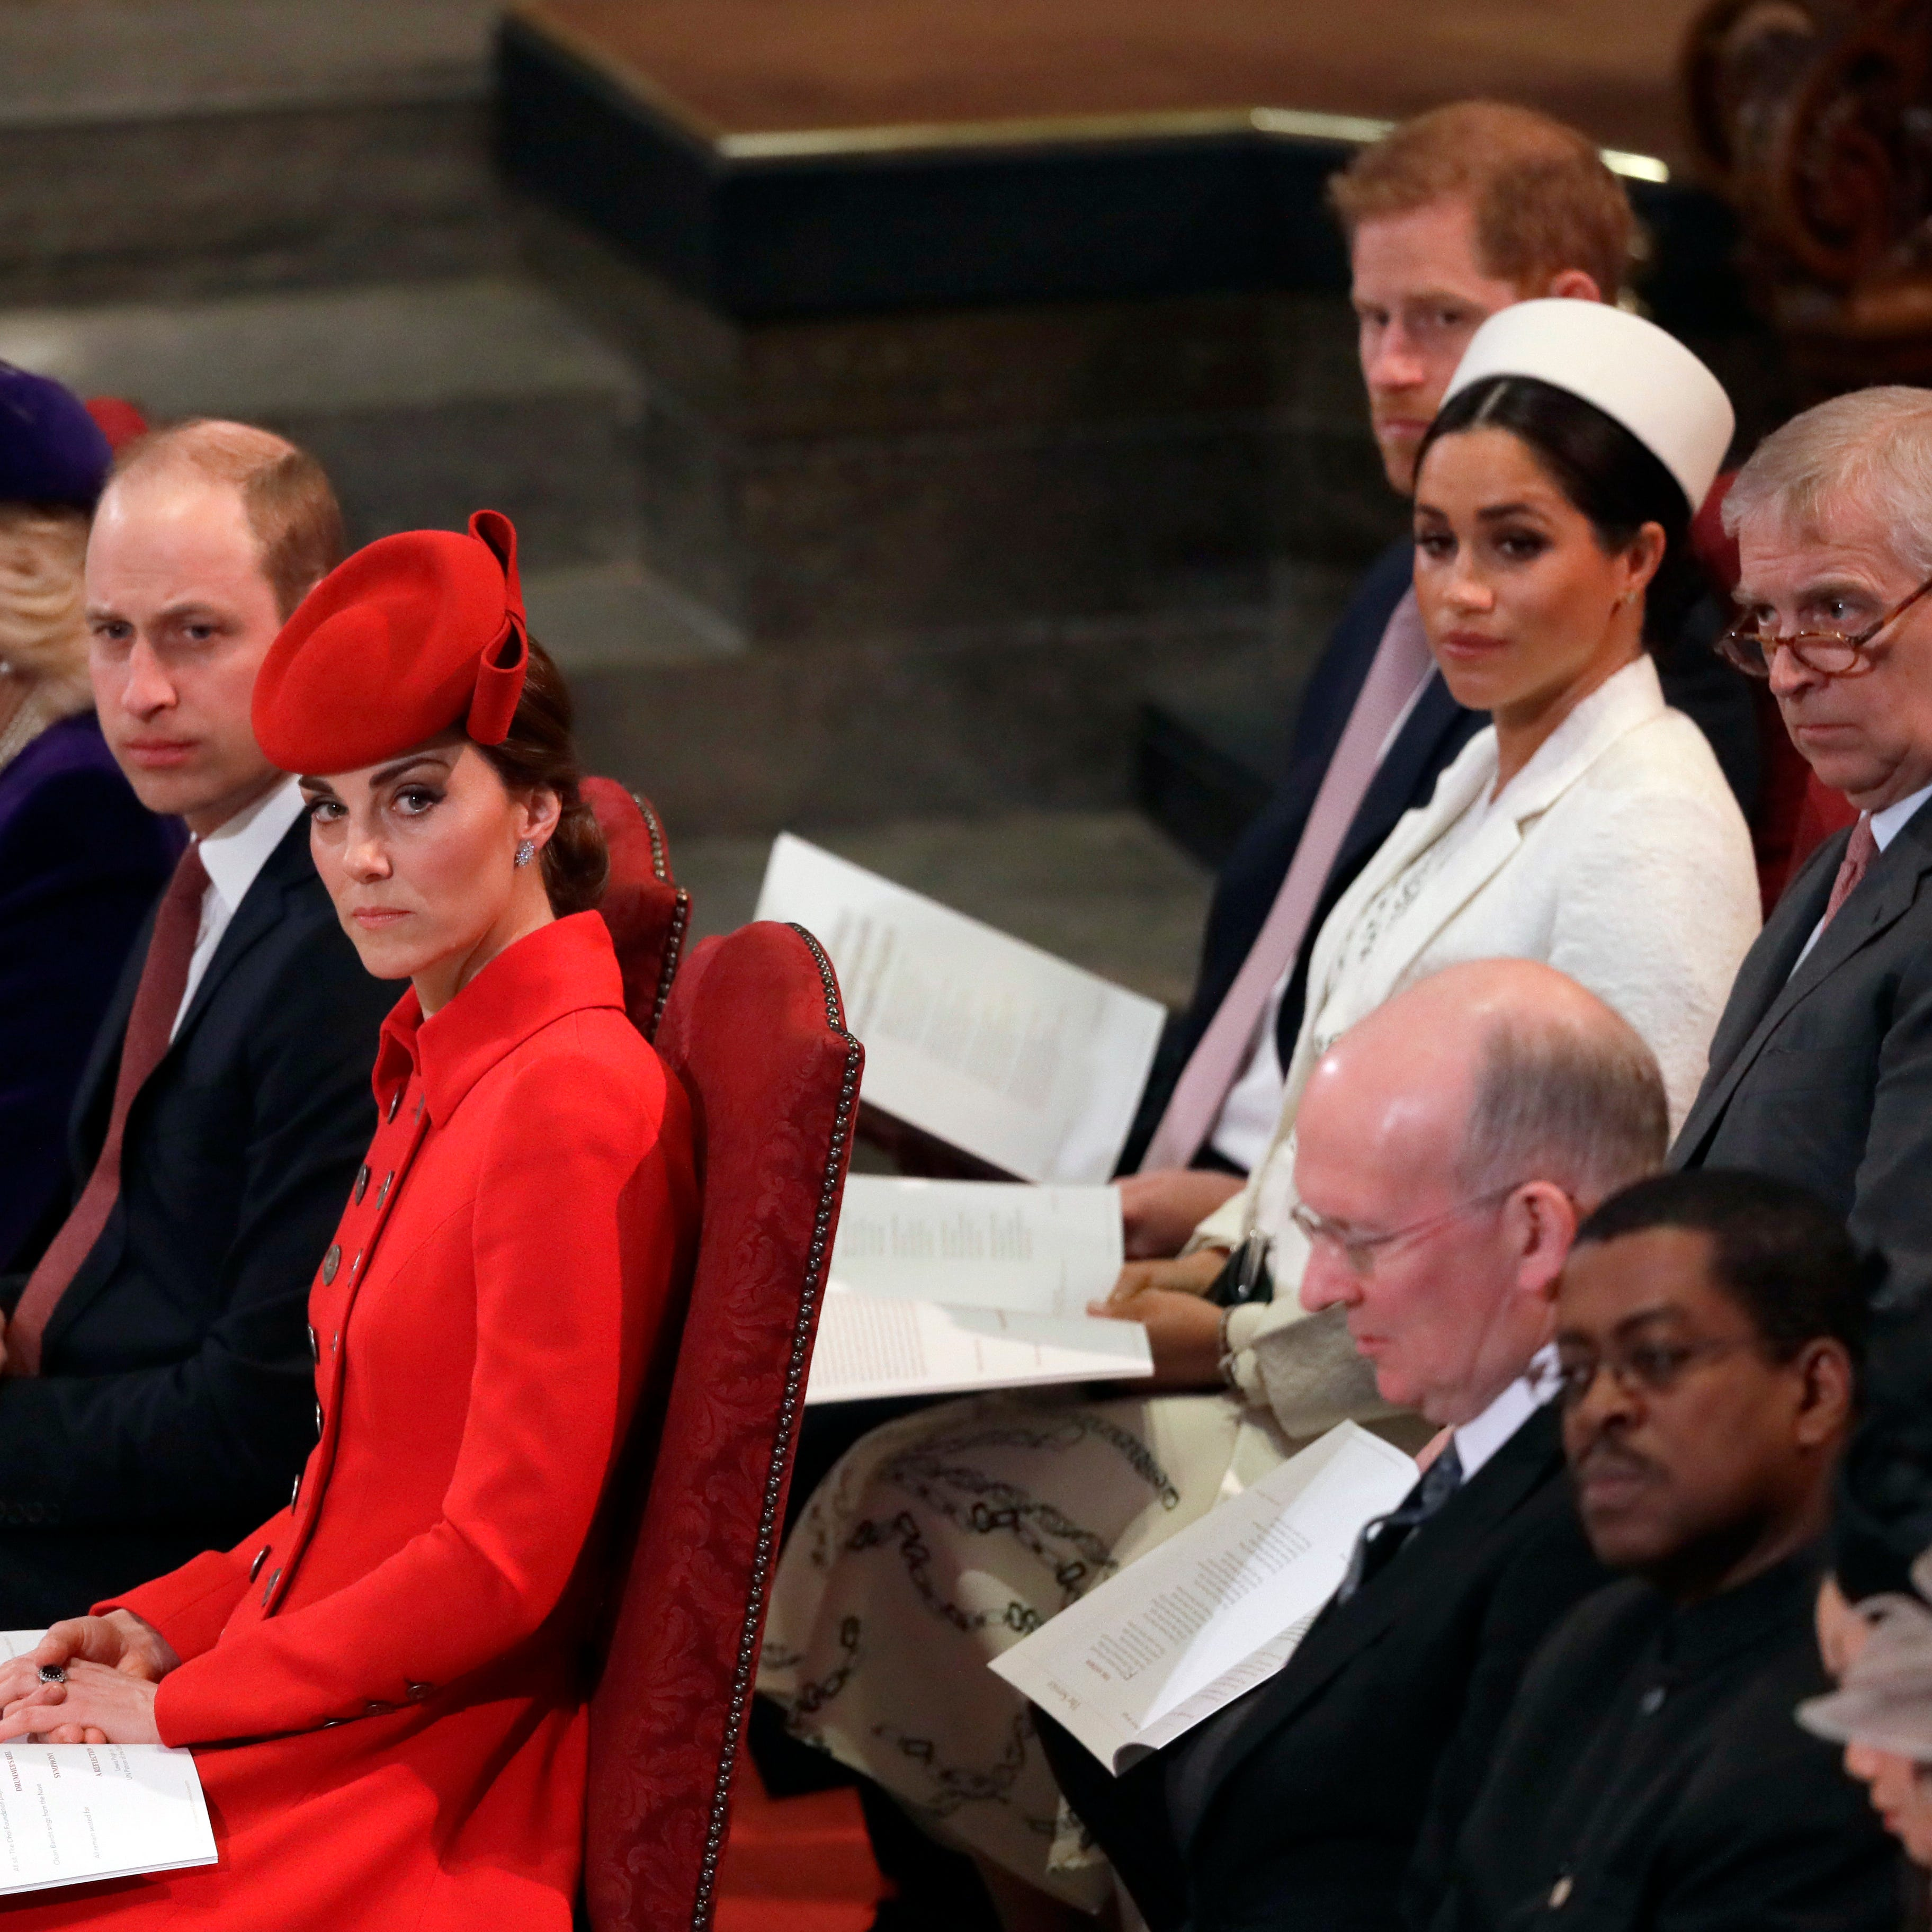 Duchess Kate of Cambridge, sits with Prince William, Duchess Camilla of Cornwall and Prince Charles in front row, with Prince Harry, Duchess Meghan of Sussex and Prince Andrew behind them, at the Commonwealth Service at Westminster Abbey, March 11, 2019.